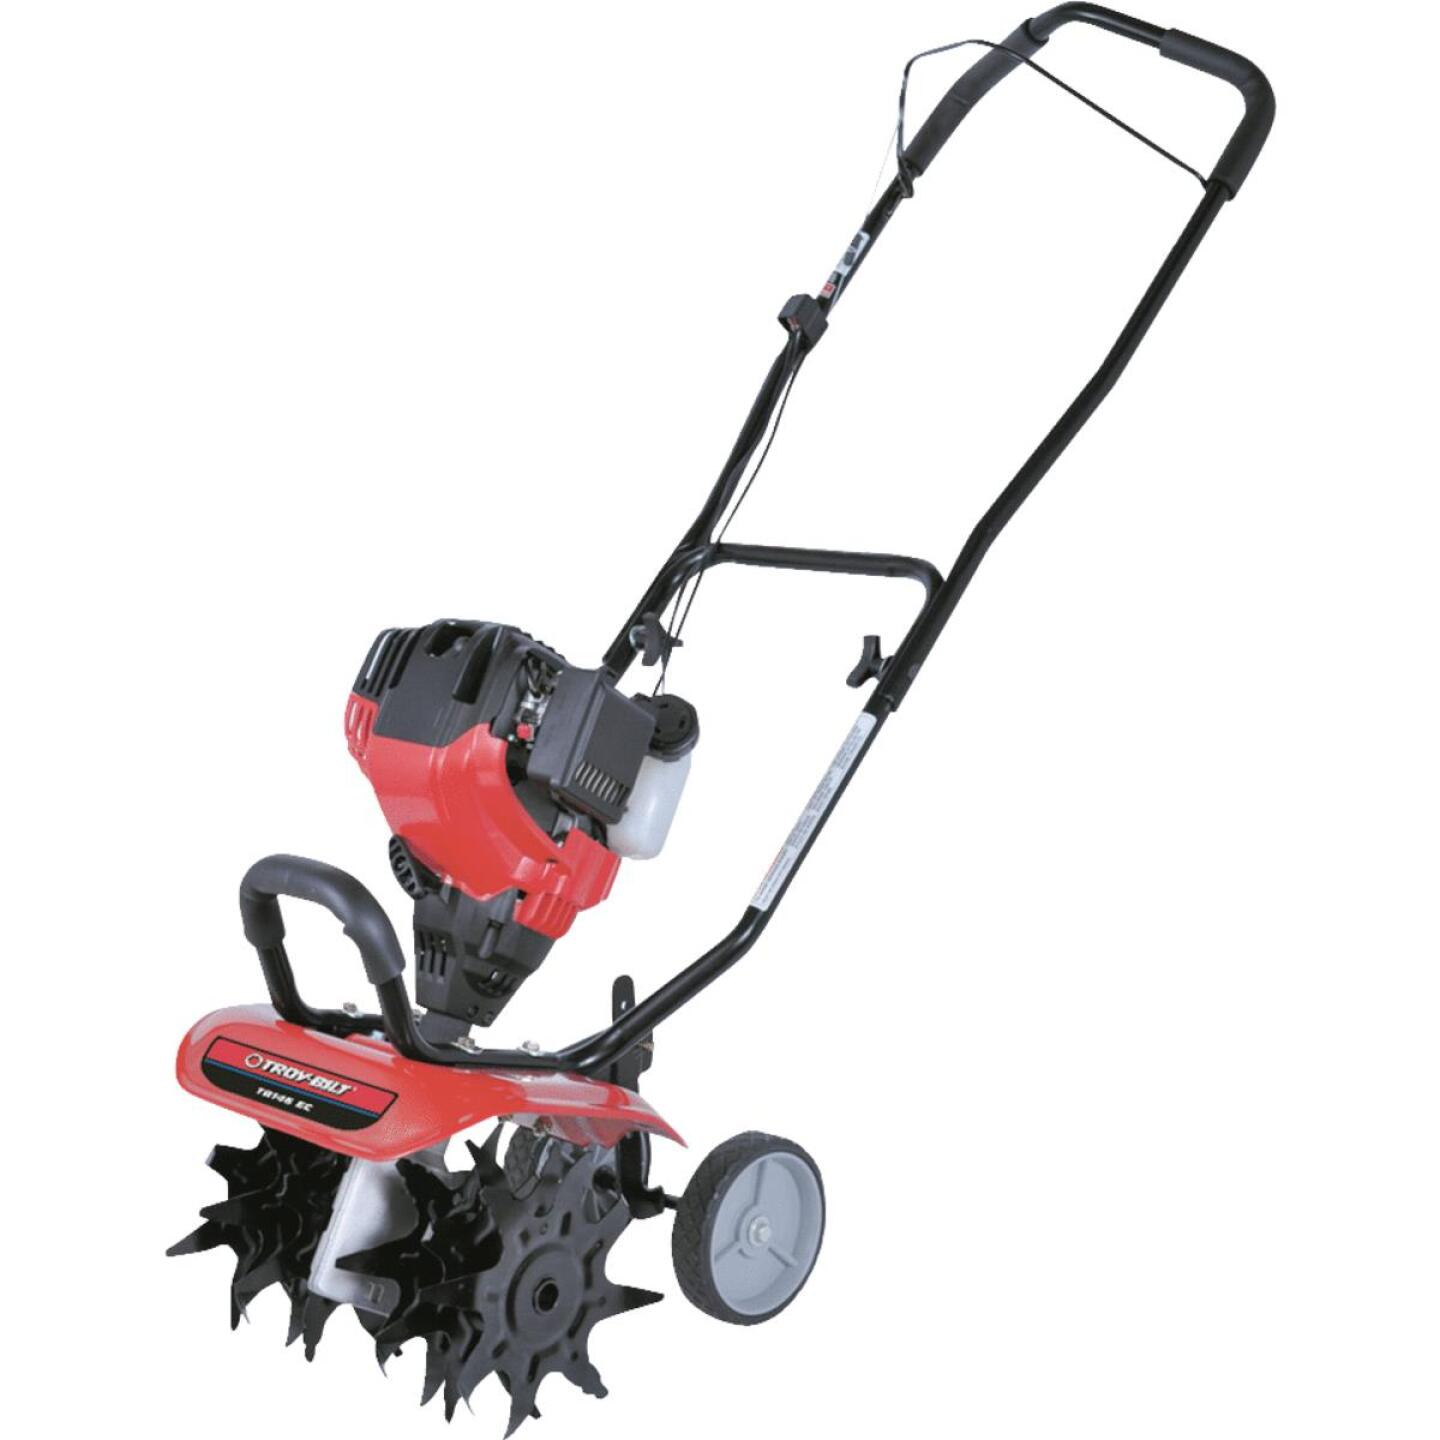 Troy-Bilt TBC304 30cc 4-Cycle Gas Cultivator Image 1